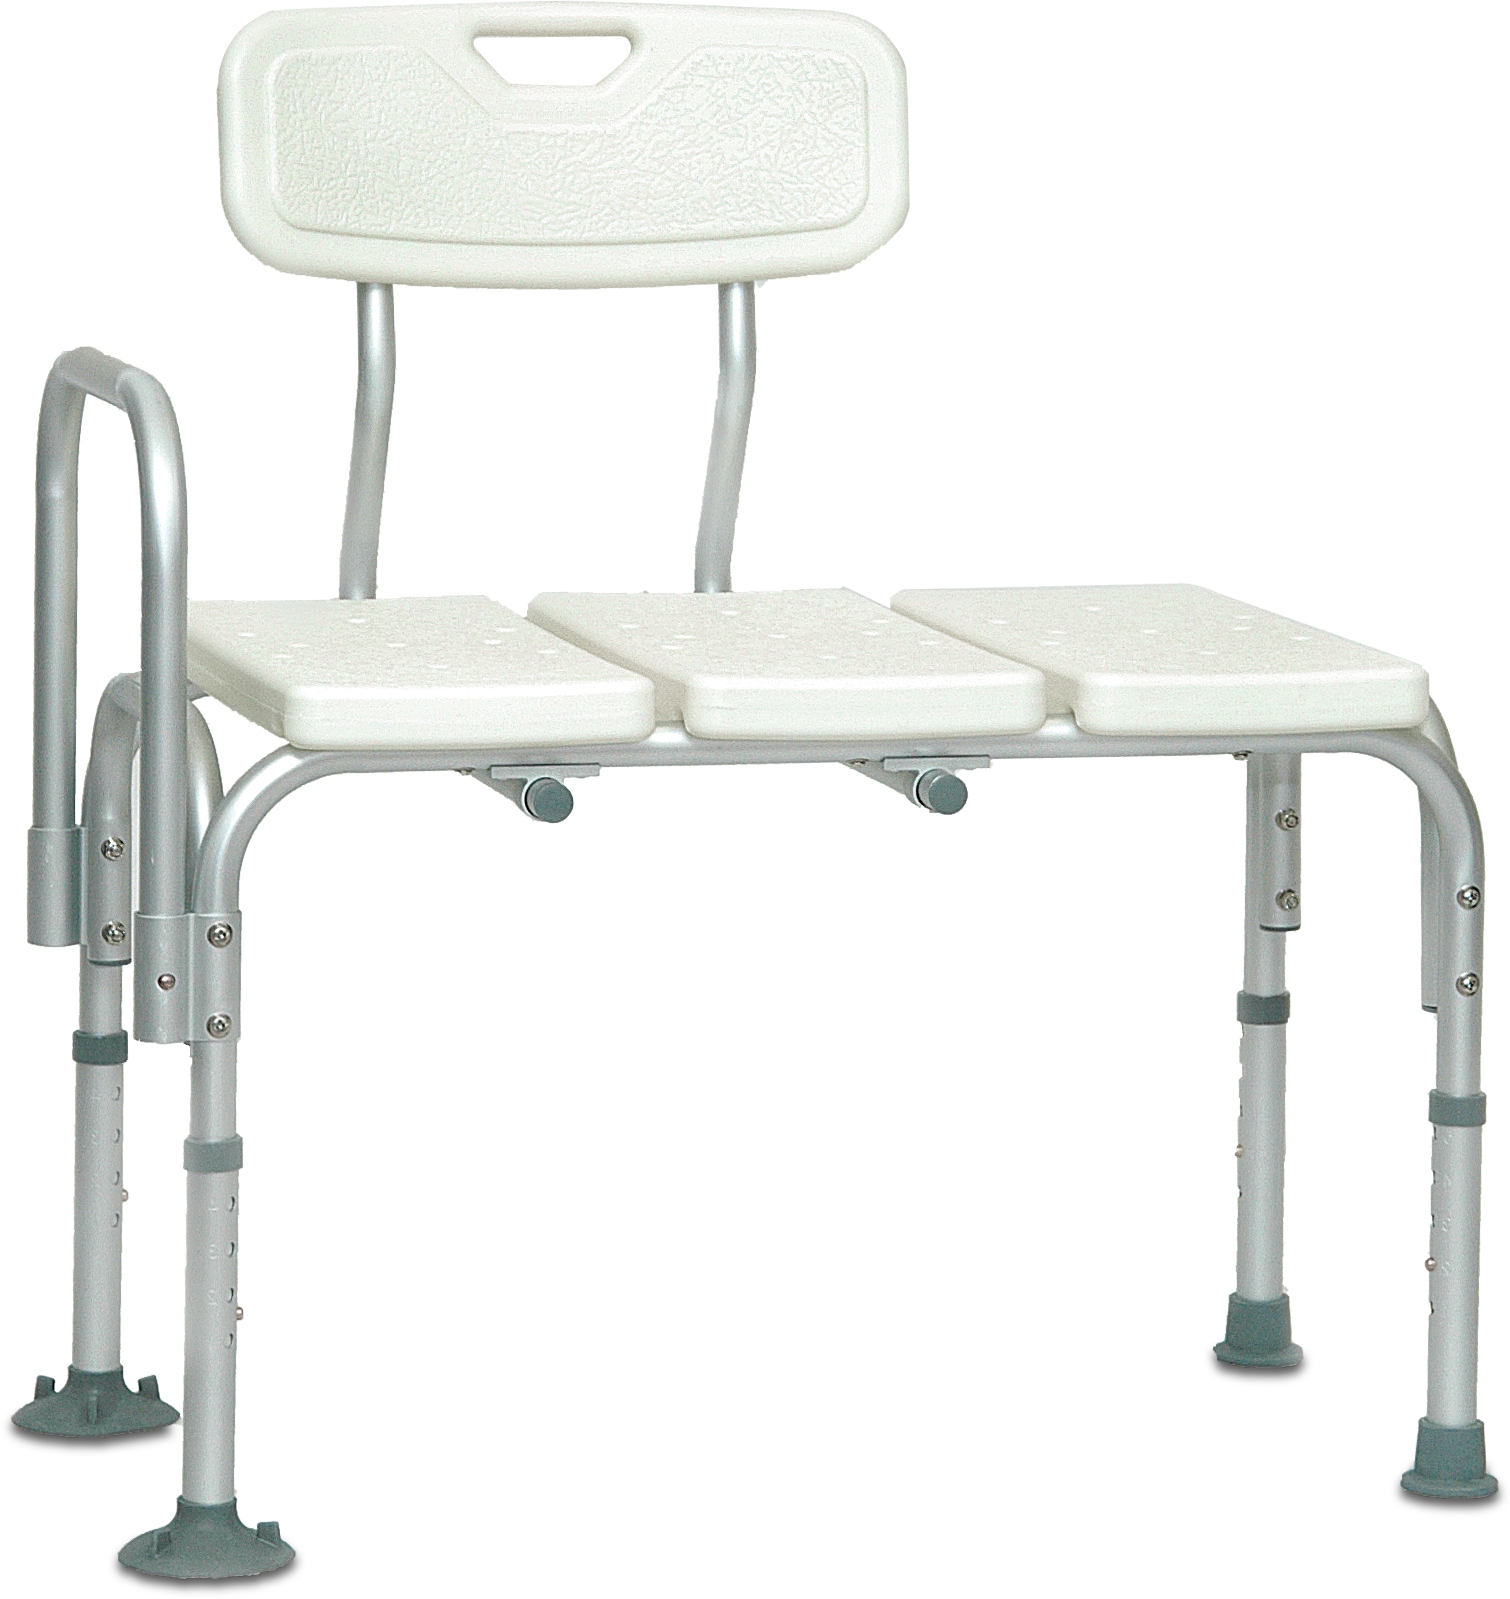 shower chair vs tub transfer bench a in room sliding avacare medical best seller probasics